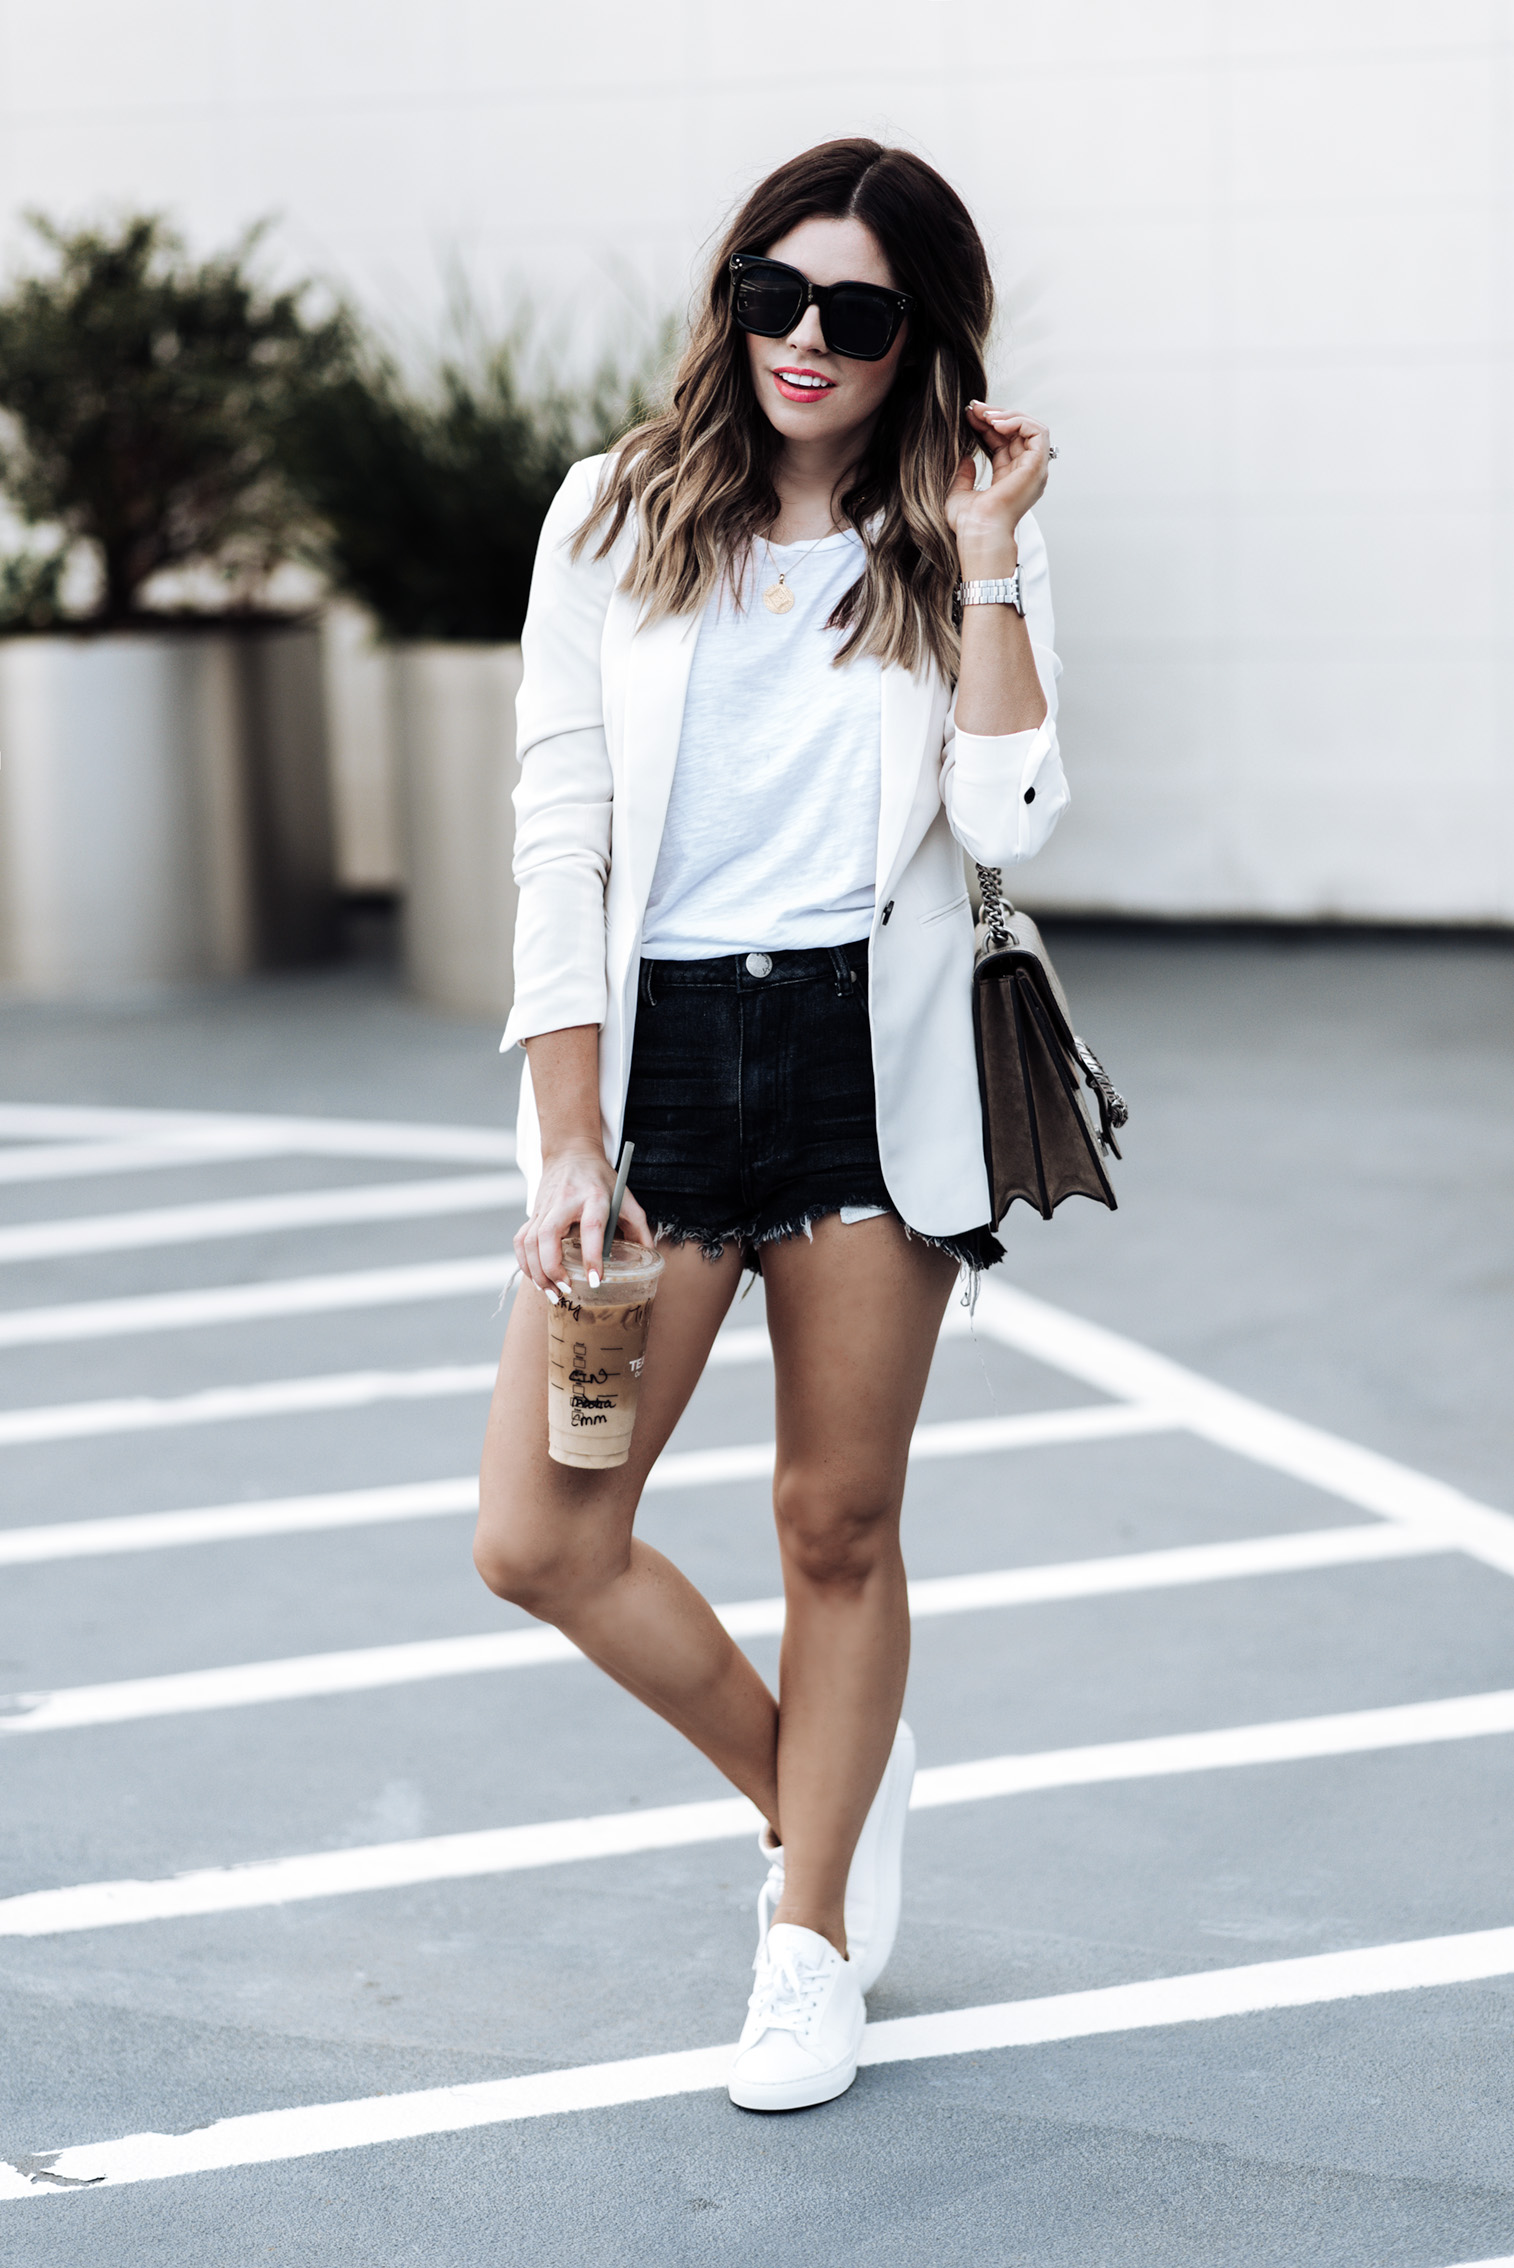 Tiffany Jais Houston fashion and lifestyle blogger |Transitional fall pieces | White Blazer from H&M (similar style here) | Denim Shorts (Similar) | Gucci Dionysus bag | {C/O} Greats sneakers|